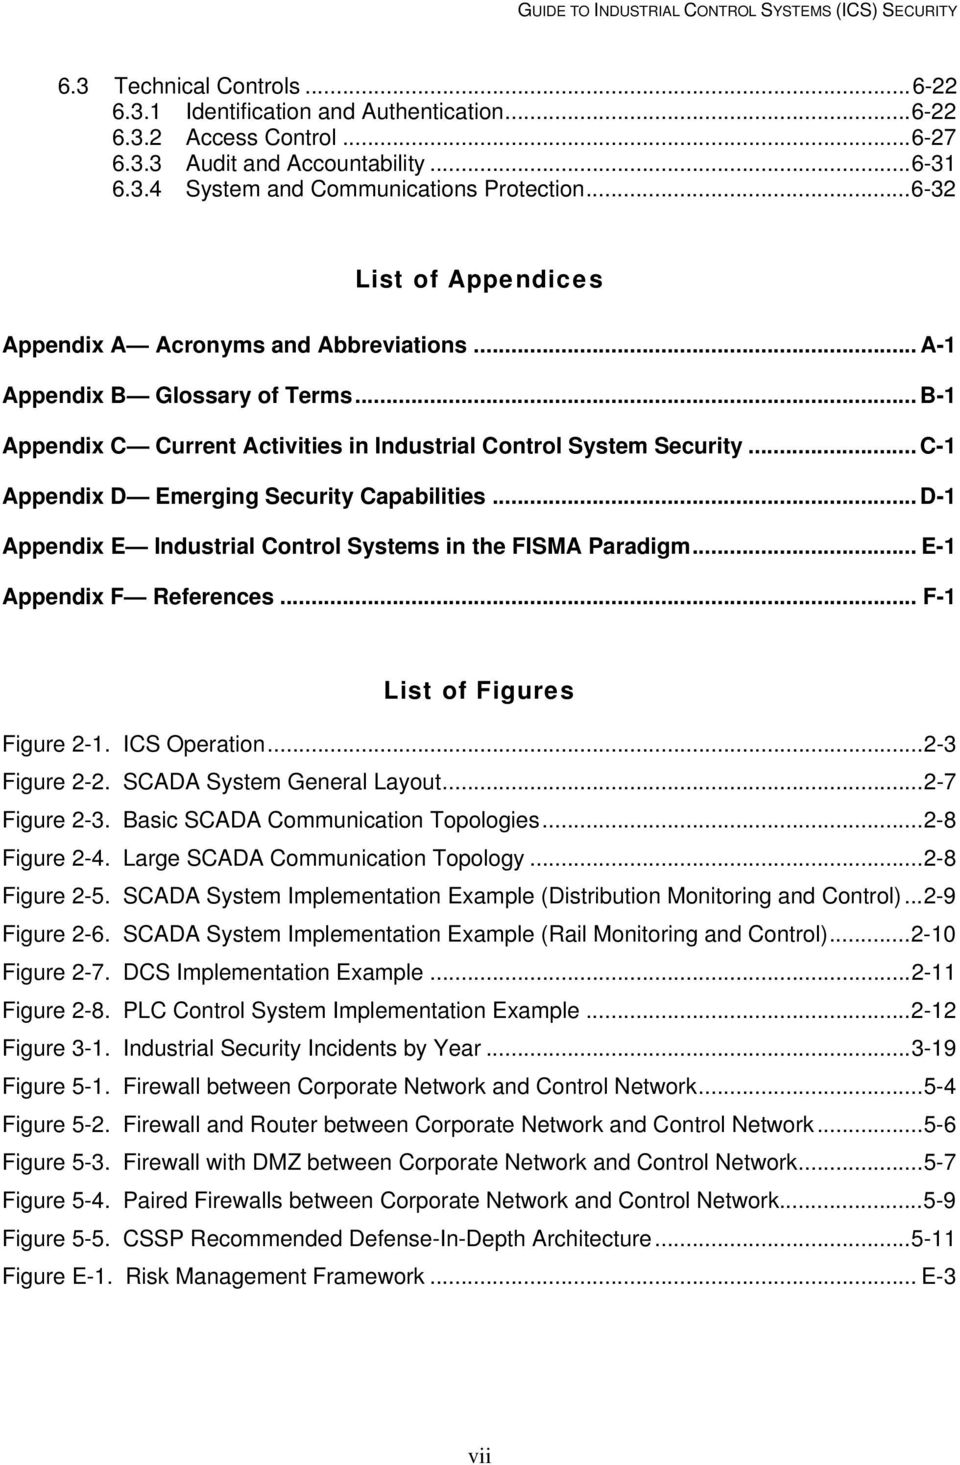 .. C-1 Appendix D Emerging Security Capabilities... D-1 Appendix E Industrial Control Systems in the FISMA Paradigm... E-1 Appendix F References... F-1 List of Figures Figure 2-1. ICS Operation.